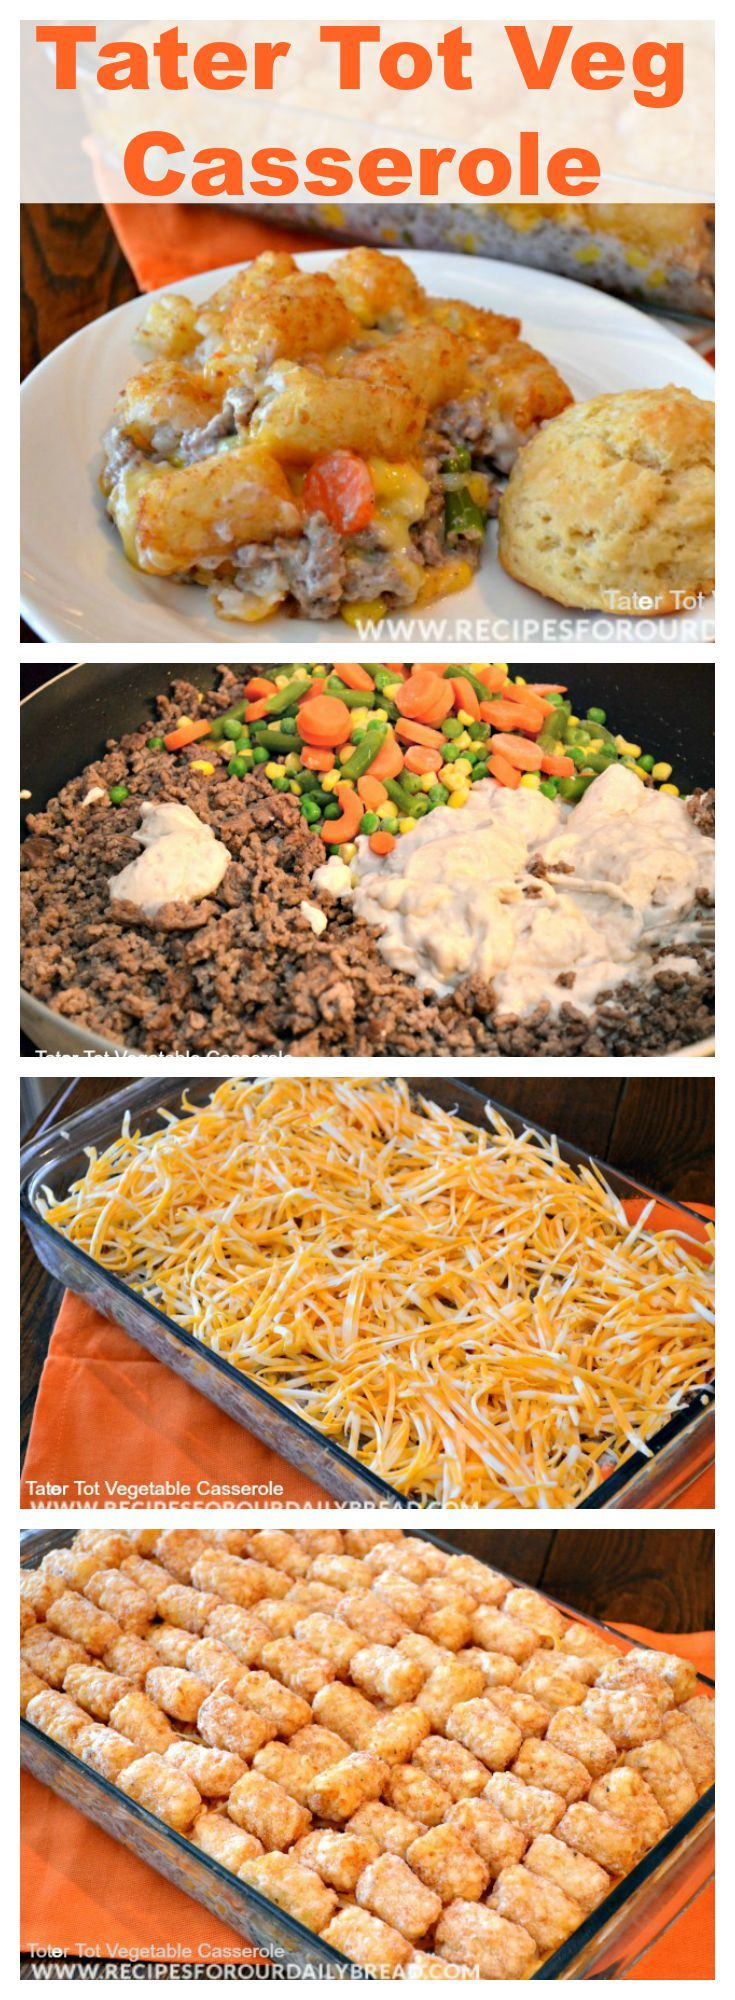 Easy Delicious Tater Tot Vegetable Casserole Recipe With Images Yummy Casseroles Tator Tot Casserole Recipe Vegetable Casserole